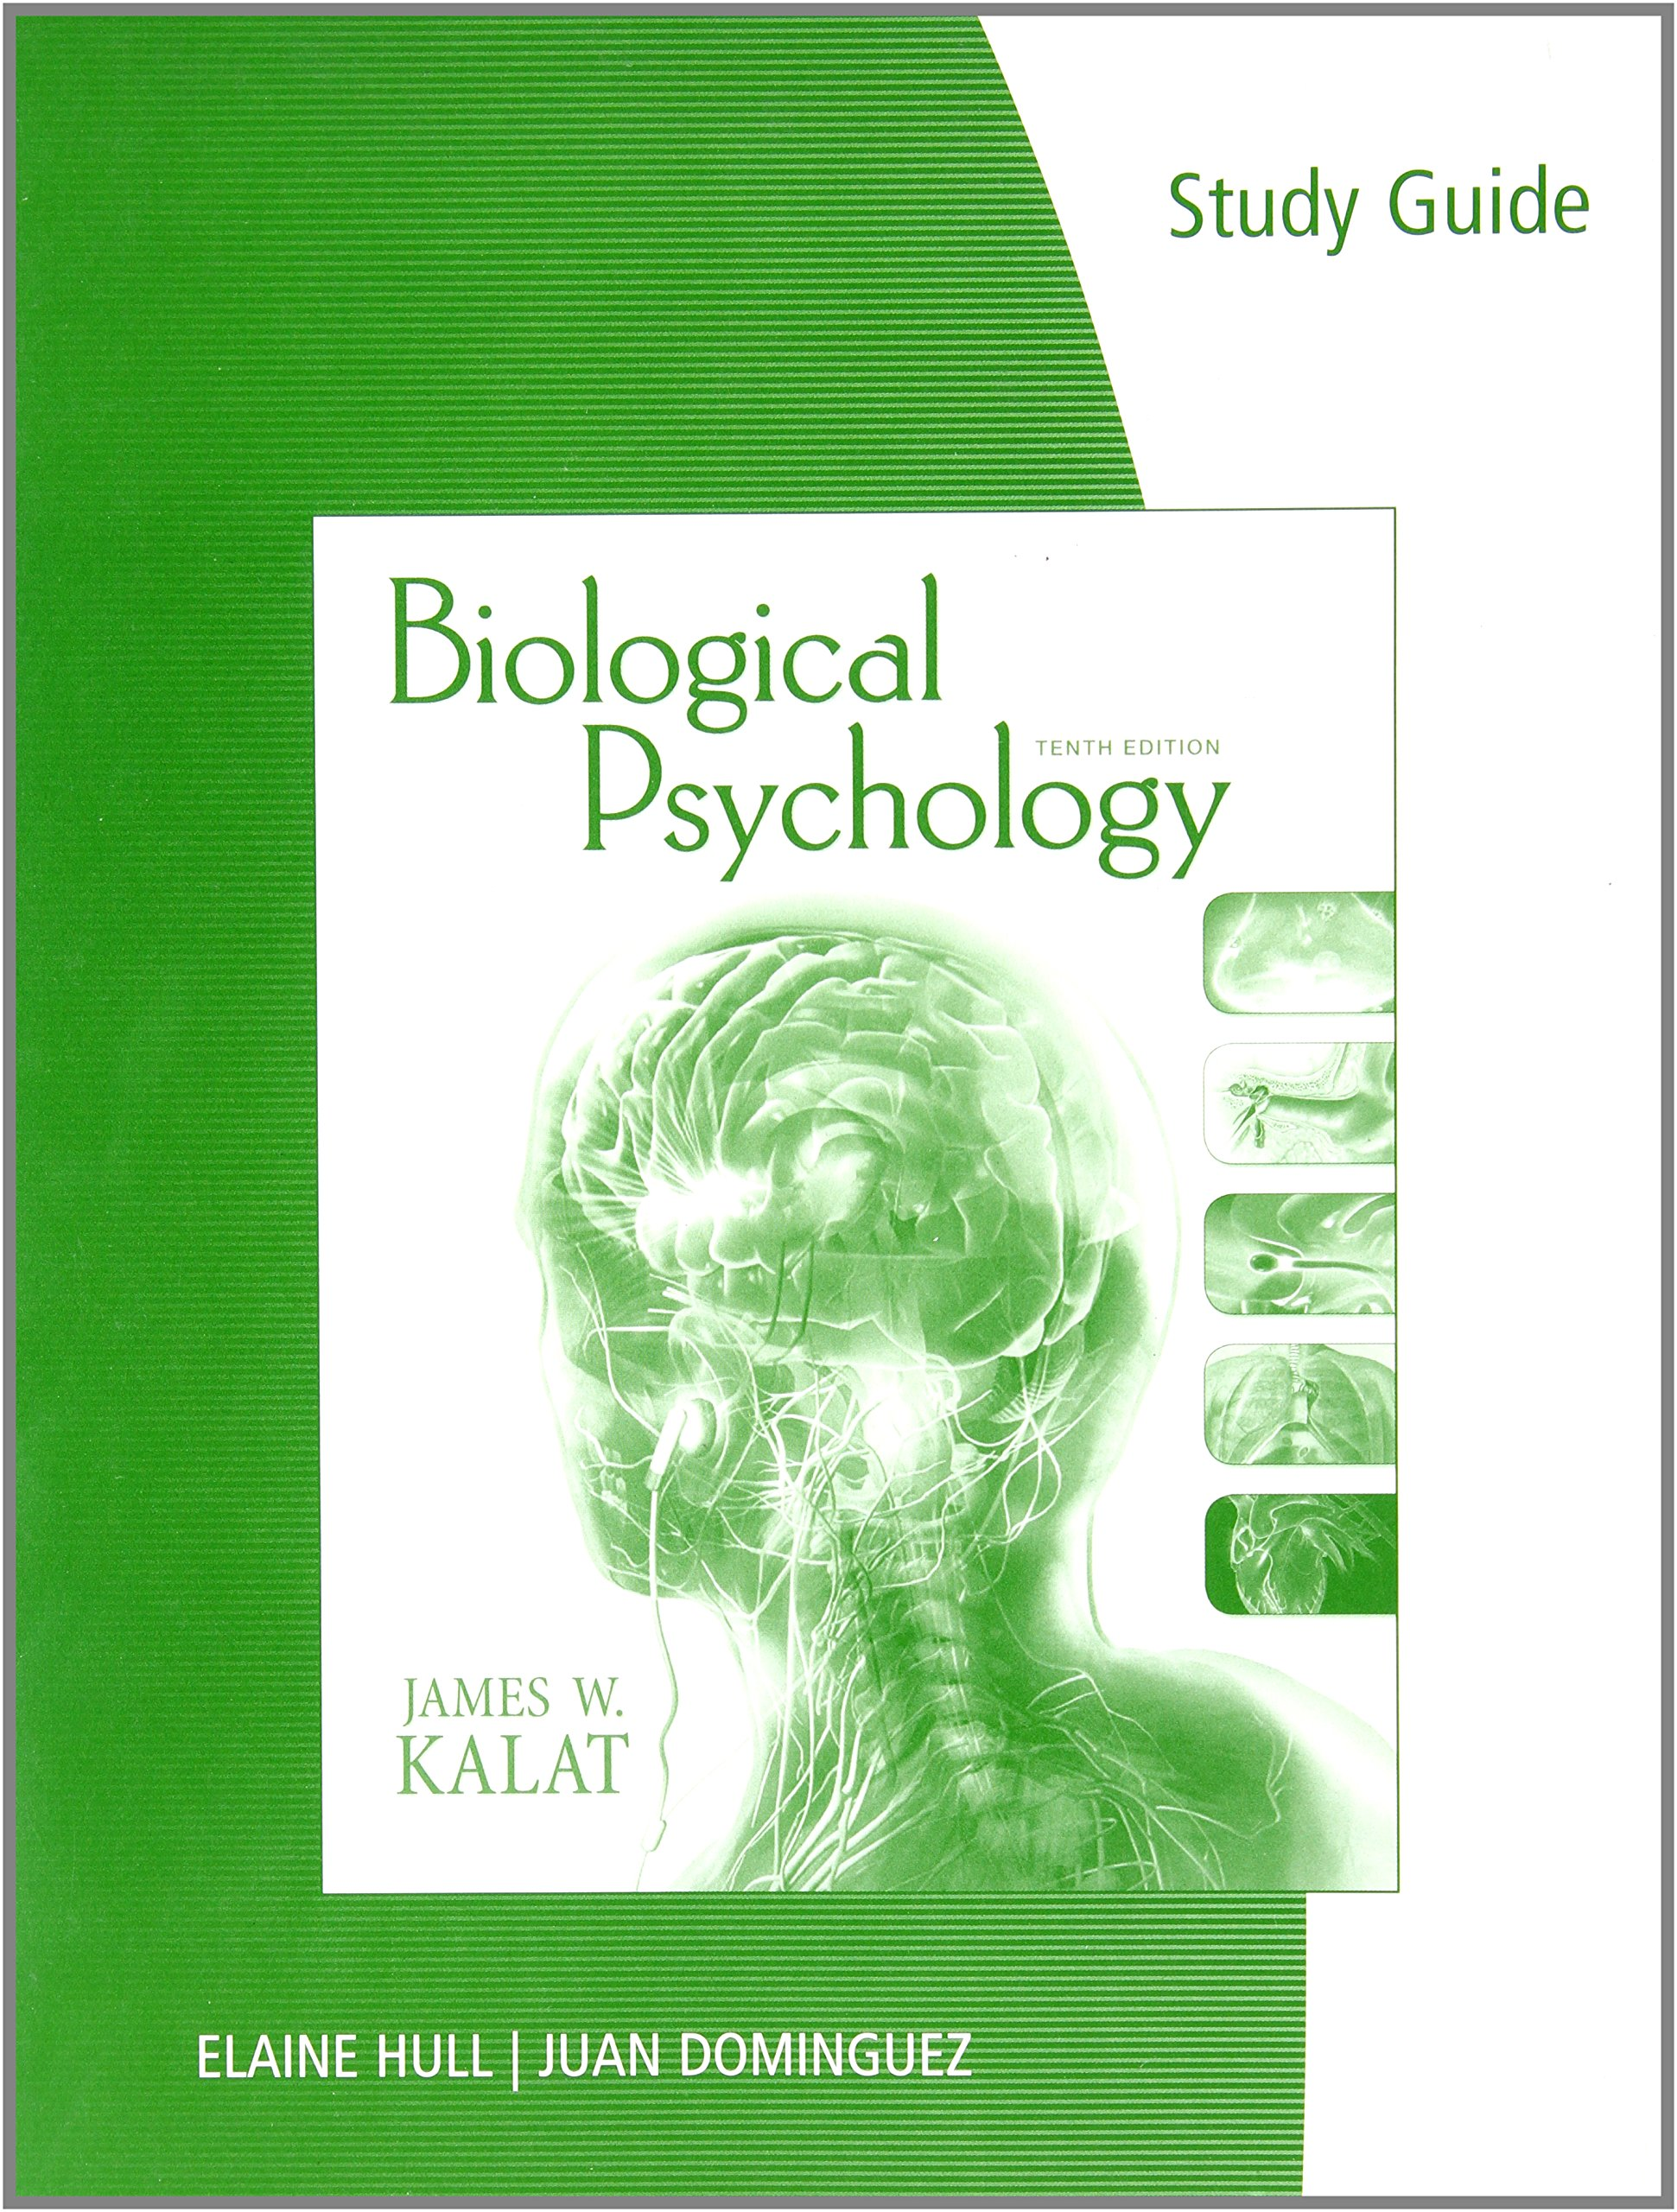 biological psychology Journal description biological psychology publishes original scientific papers on the biological aspects of psychological states and processes.